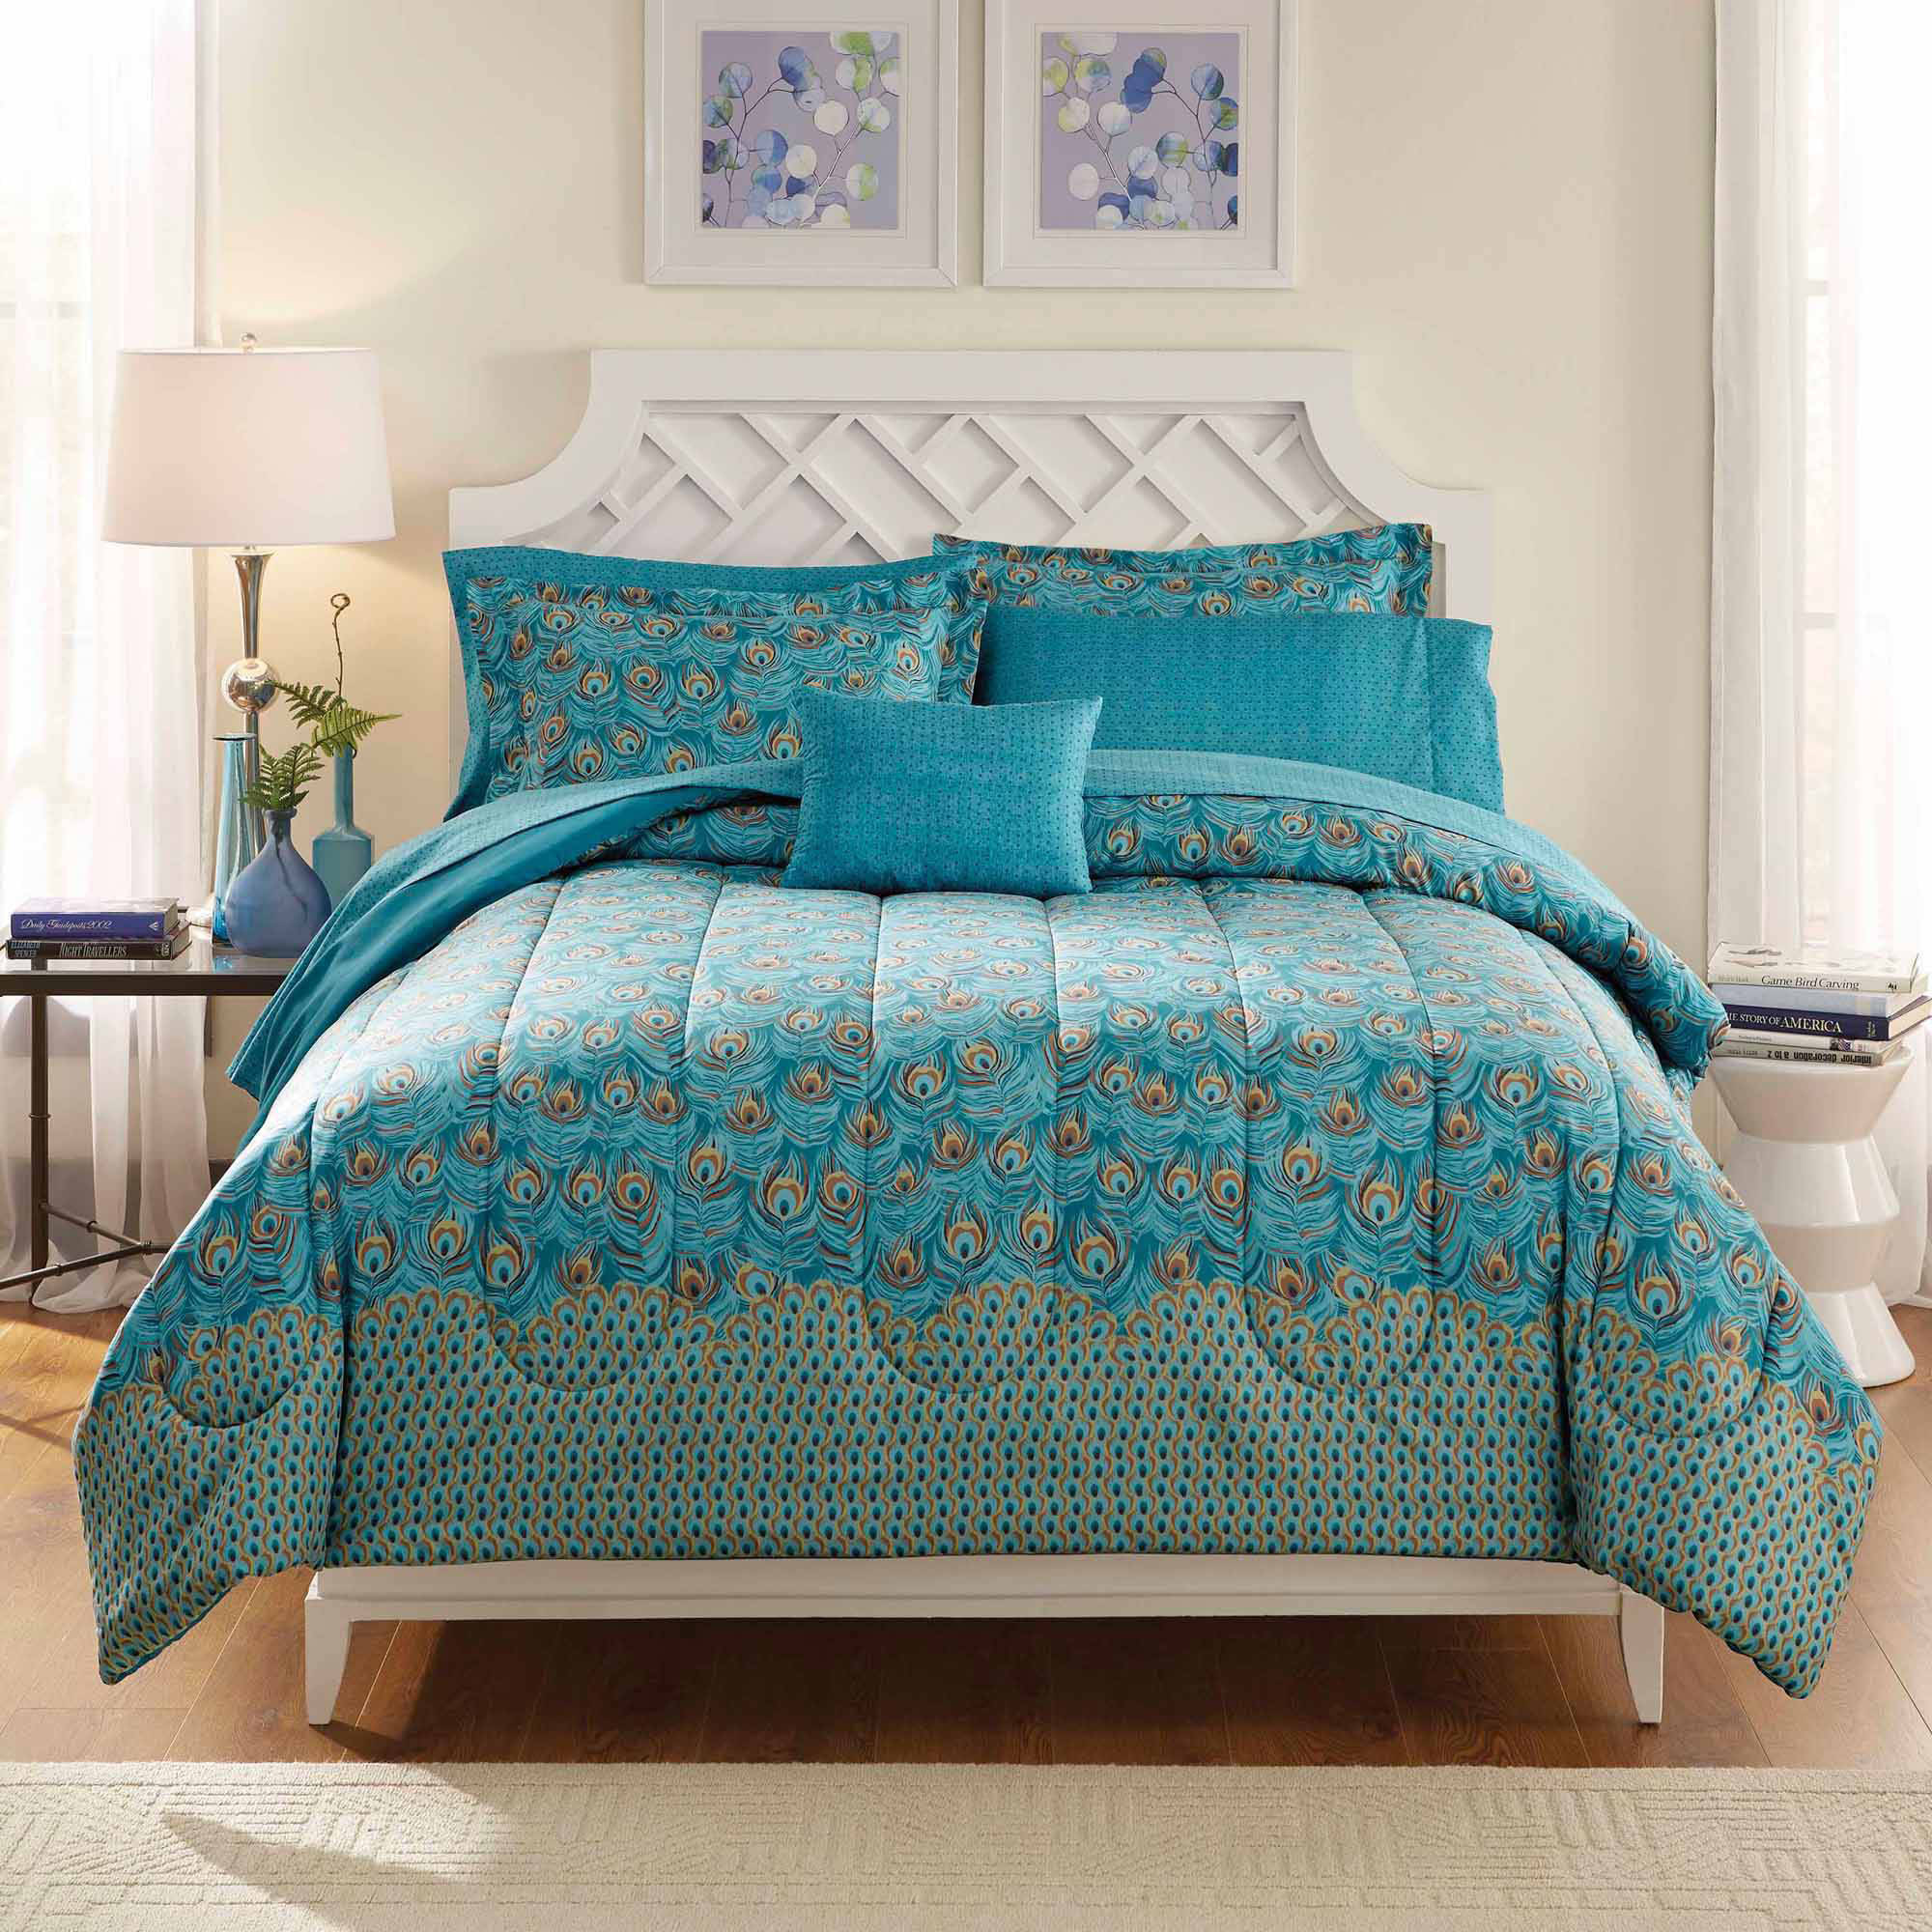 Peacock Twin Bedding | Peacock Bedding | Peacock Alley Duvet